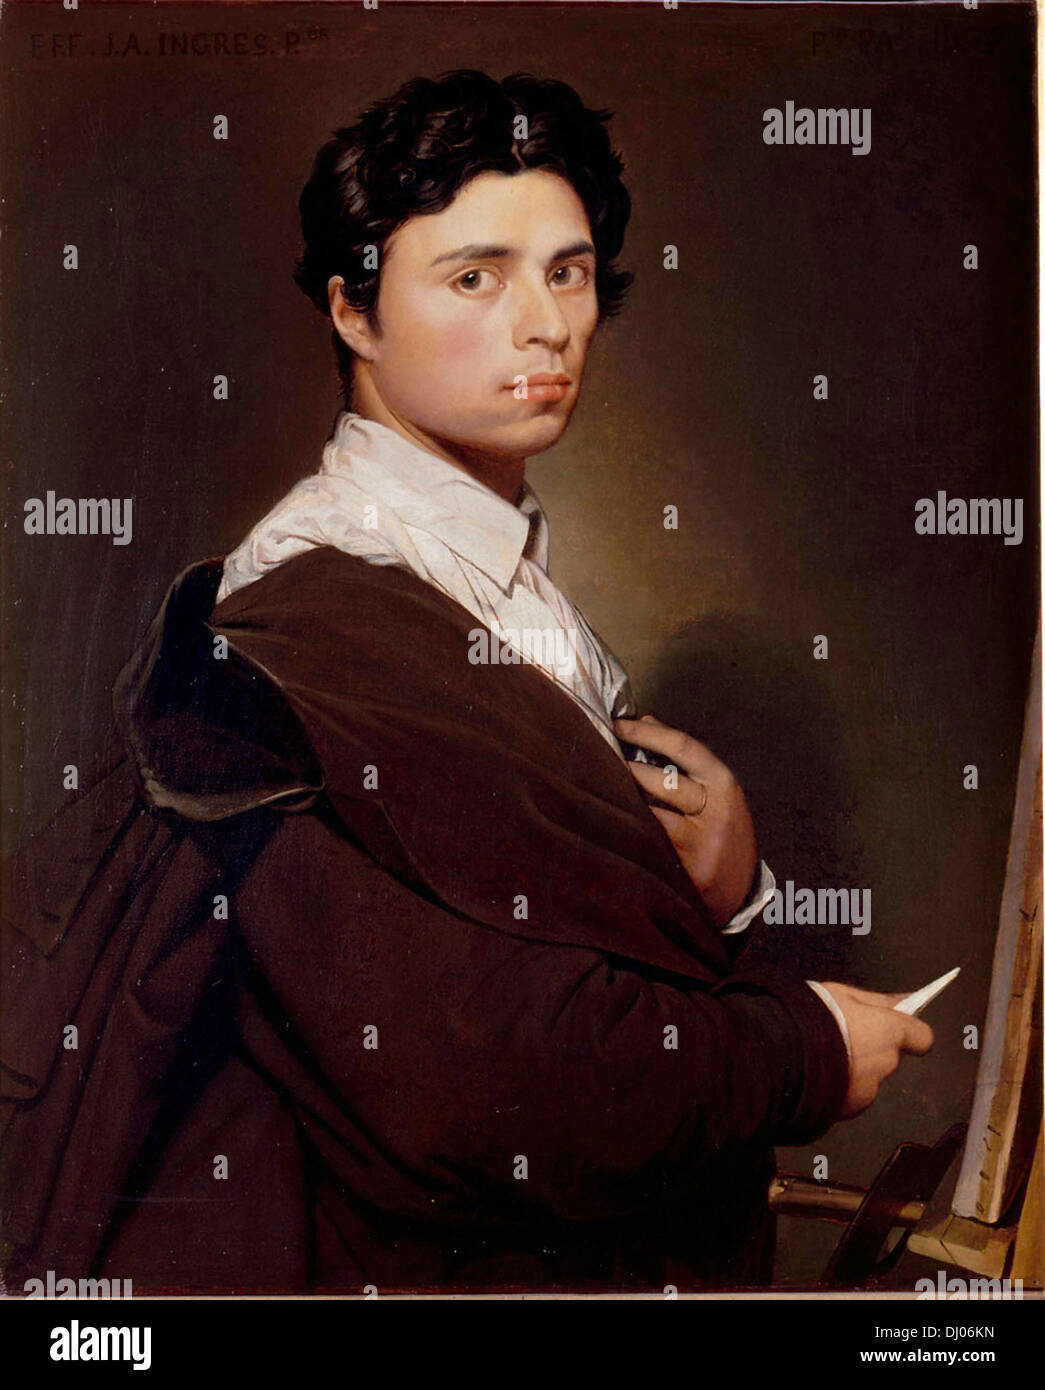 Jean Auguste Dominique Ingres, painter, self portrait, French Neoclassical painter - Stock Image